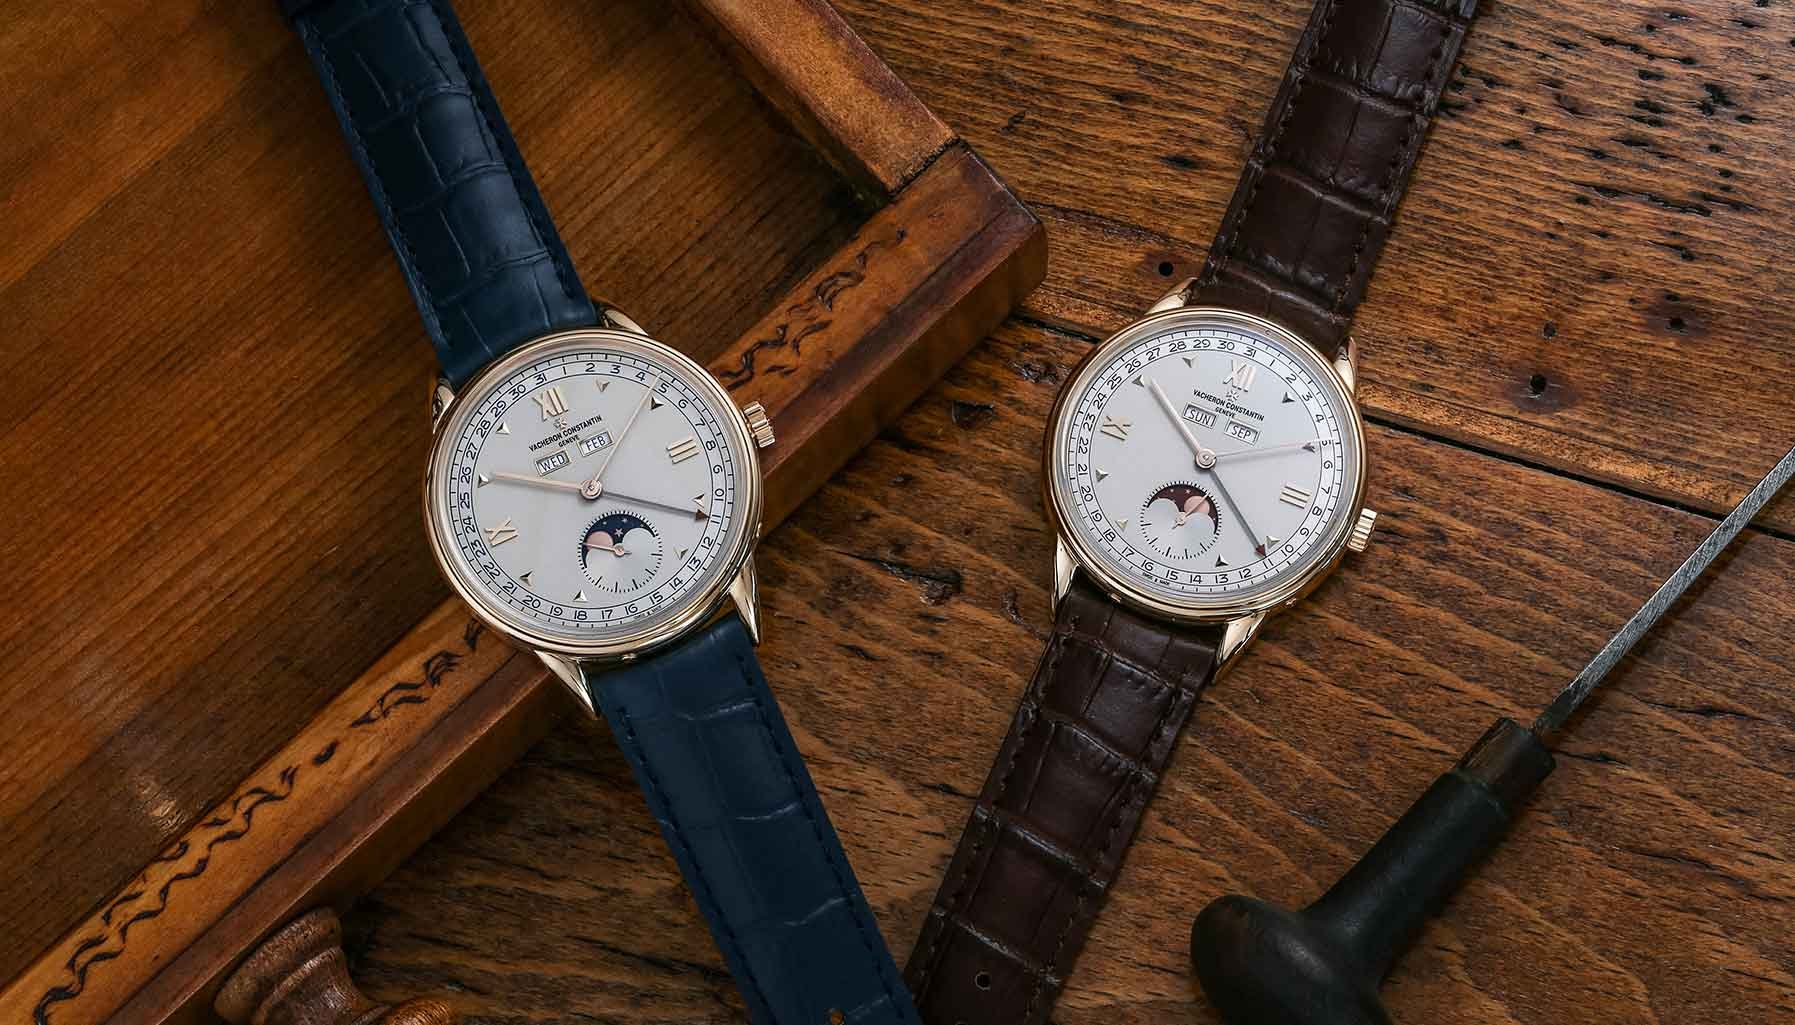 Vacheron Constantin Triple Calendrier 1942 and Triple Calendrier 1948